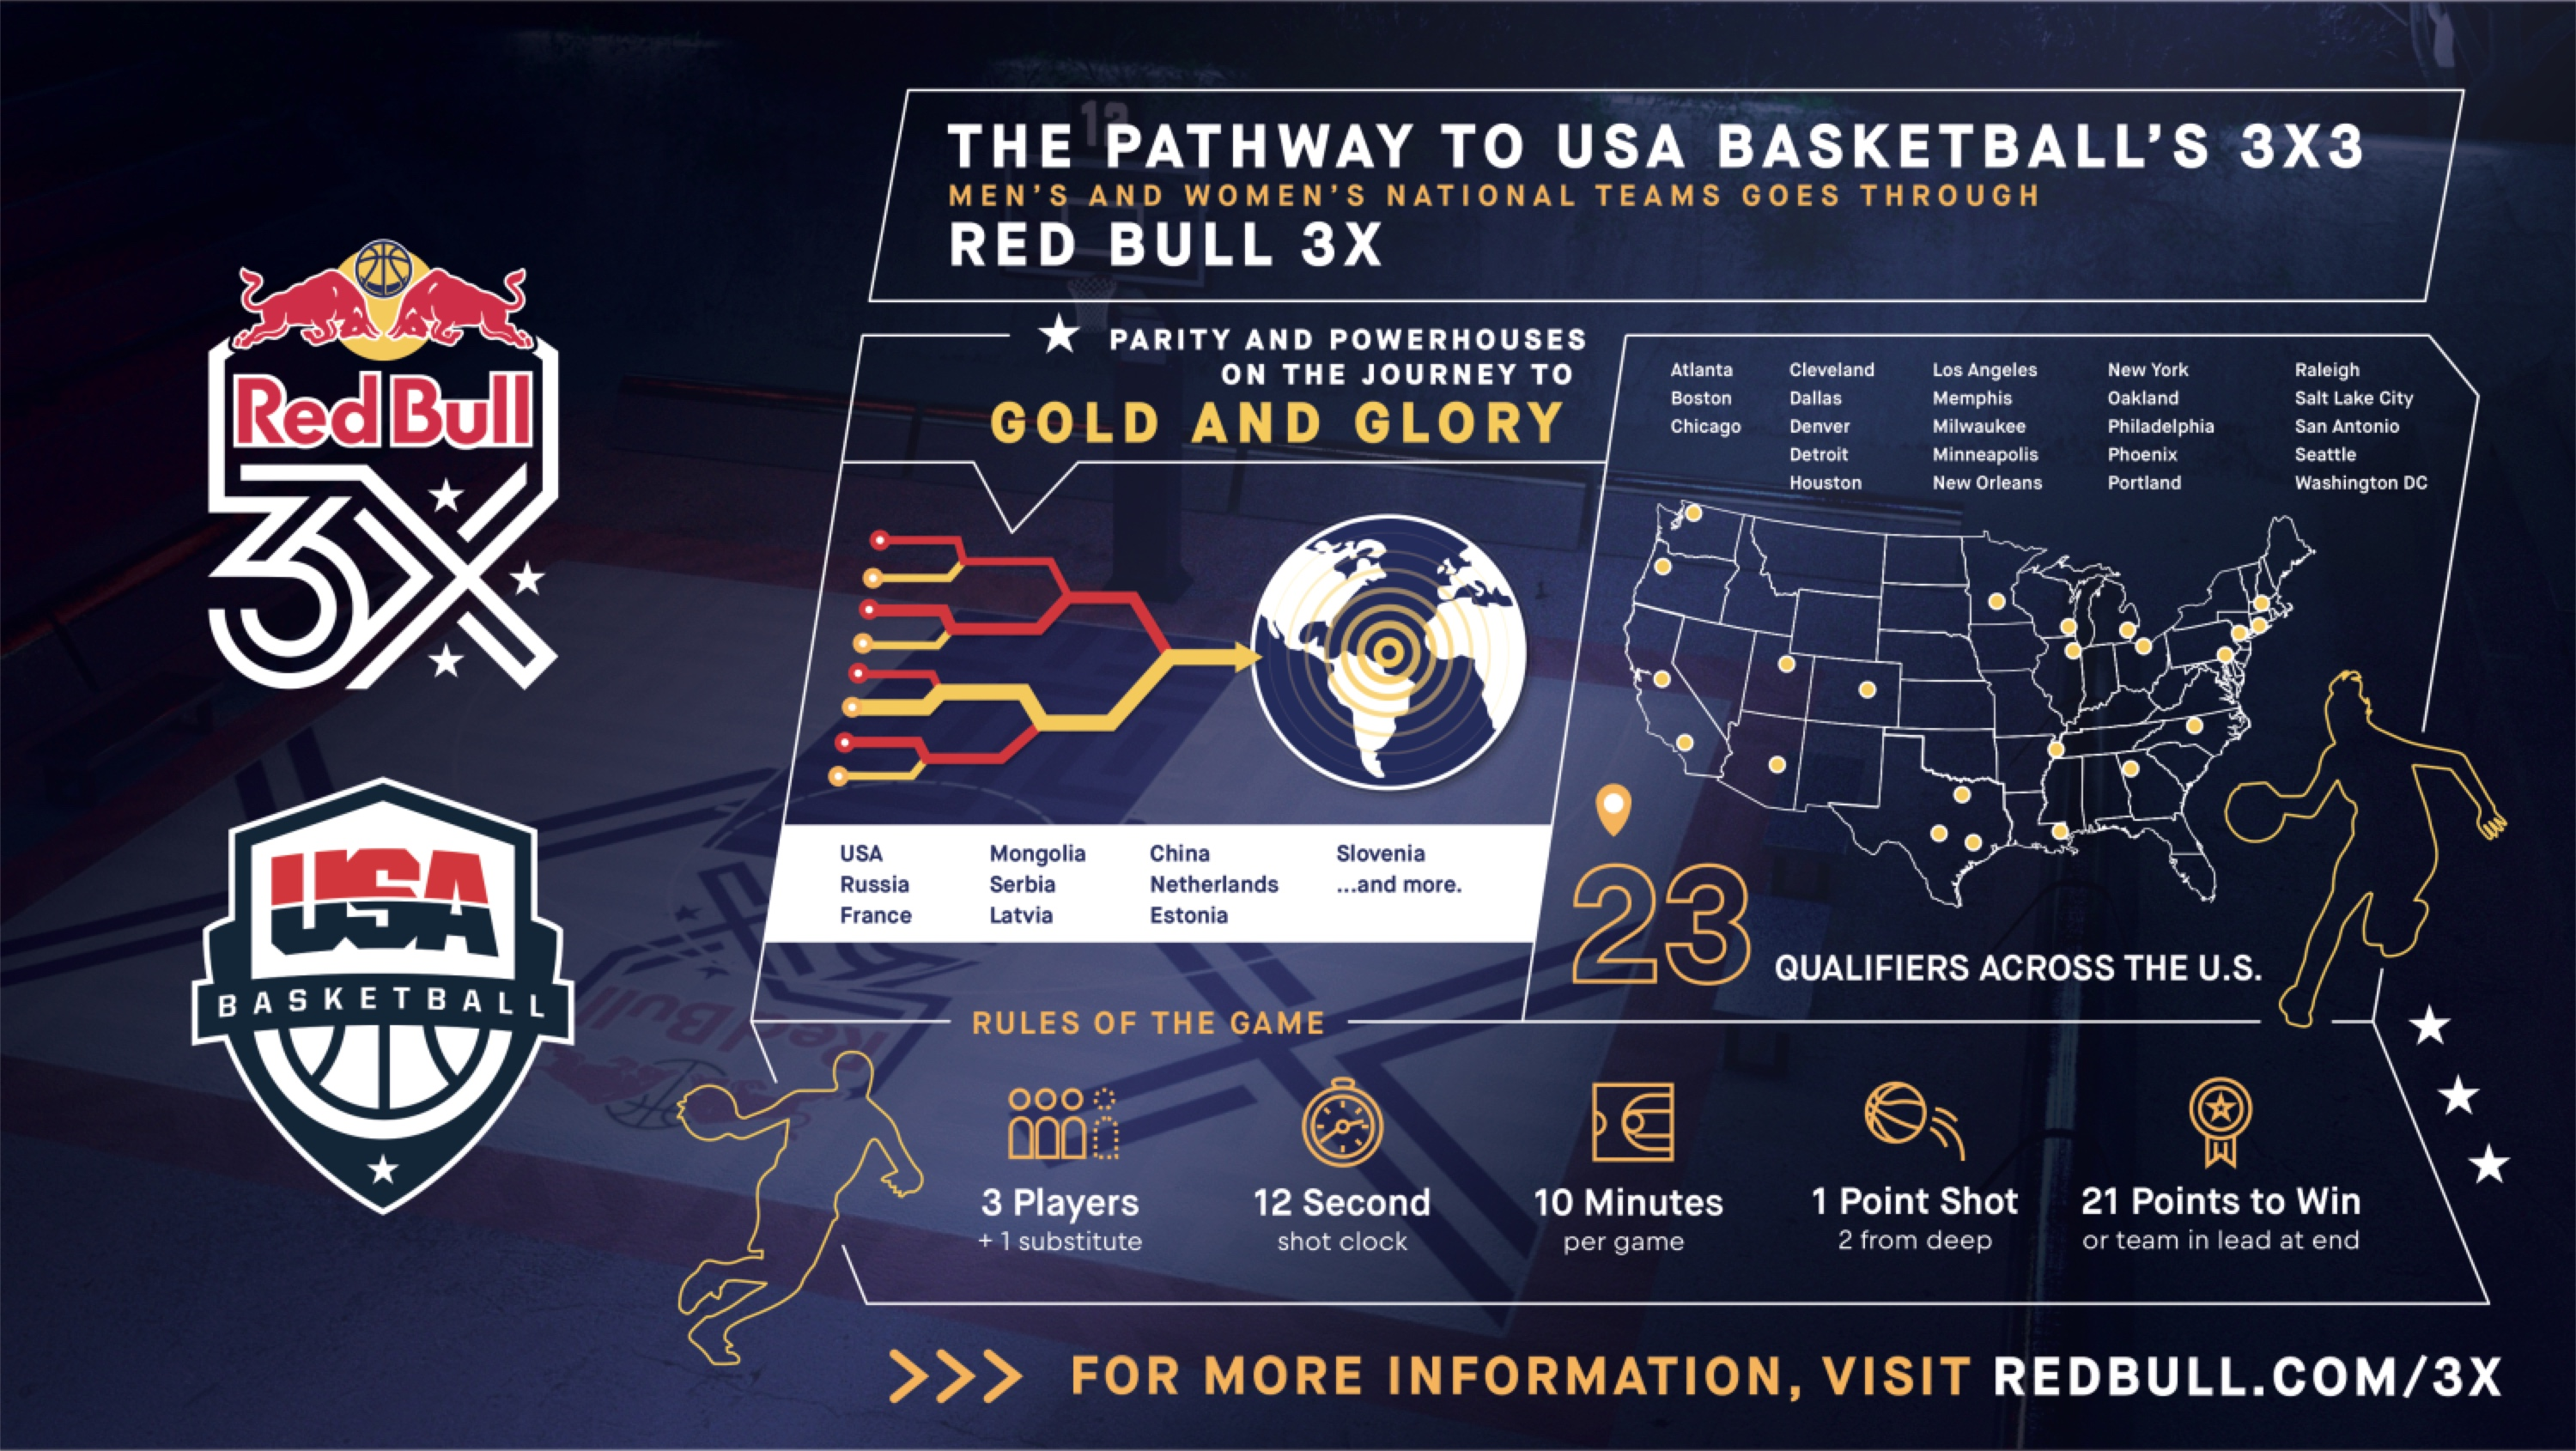 ac26da154720 USA Basketball and Red Bull Form Groundbreaking Partnership to Grow 3X3  Basketball